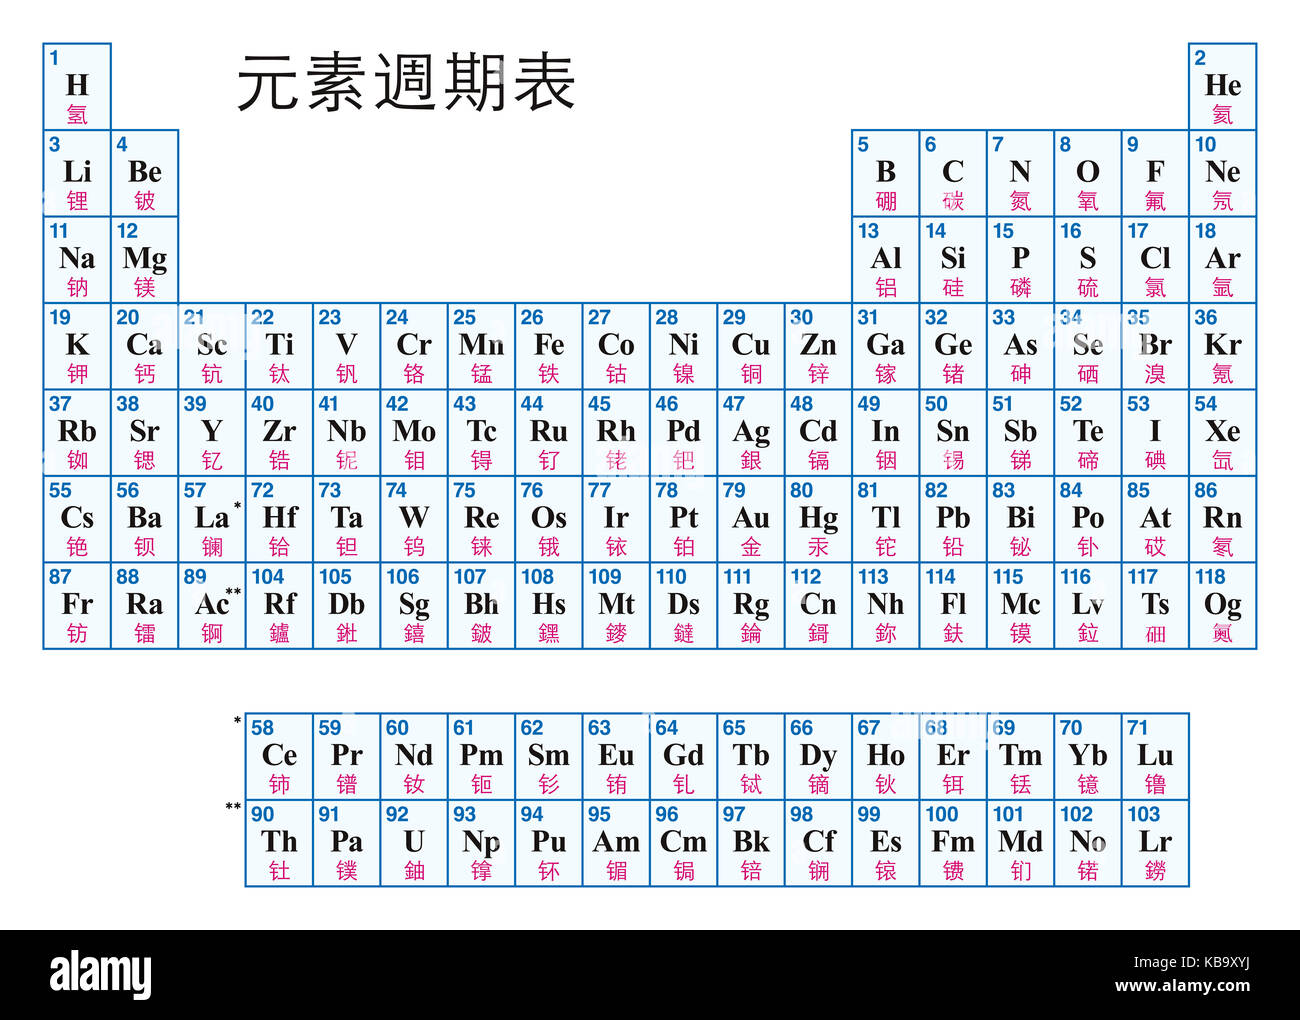 Chemical symbols stock photos chemical symbols stock images alamy periodic table of the elements chinese tabular arrangement of chemical elements with their atomic buycottarizona